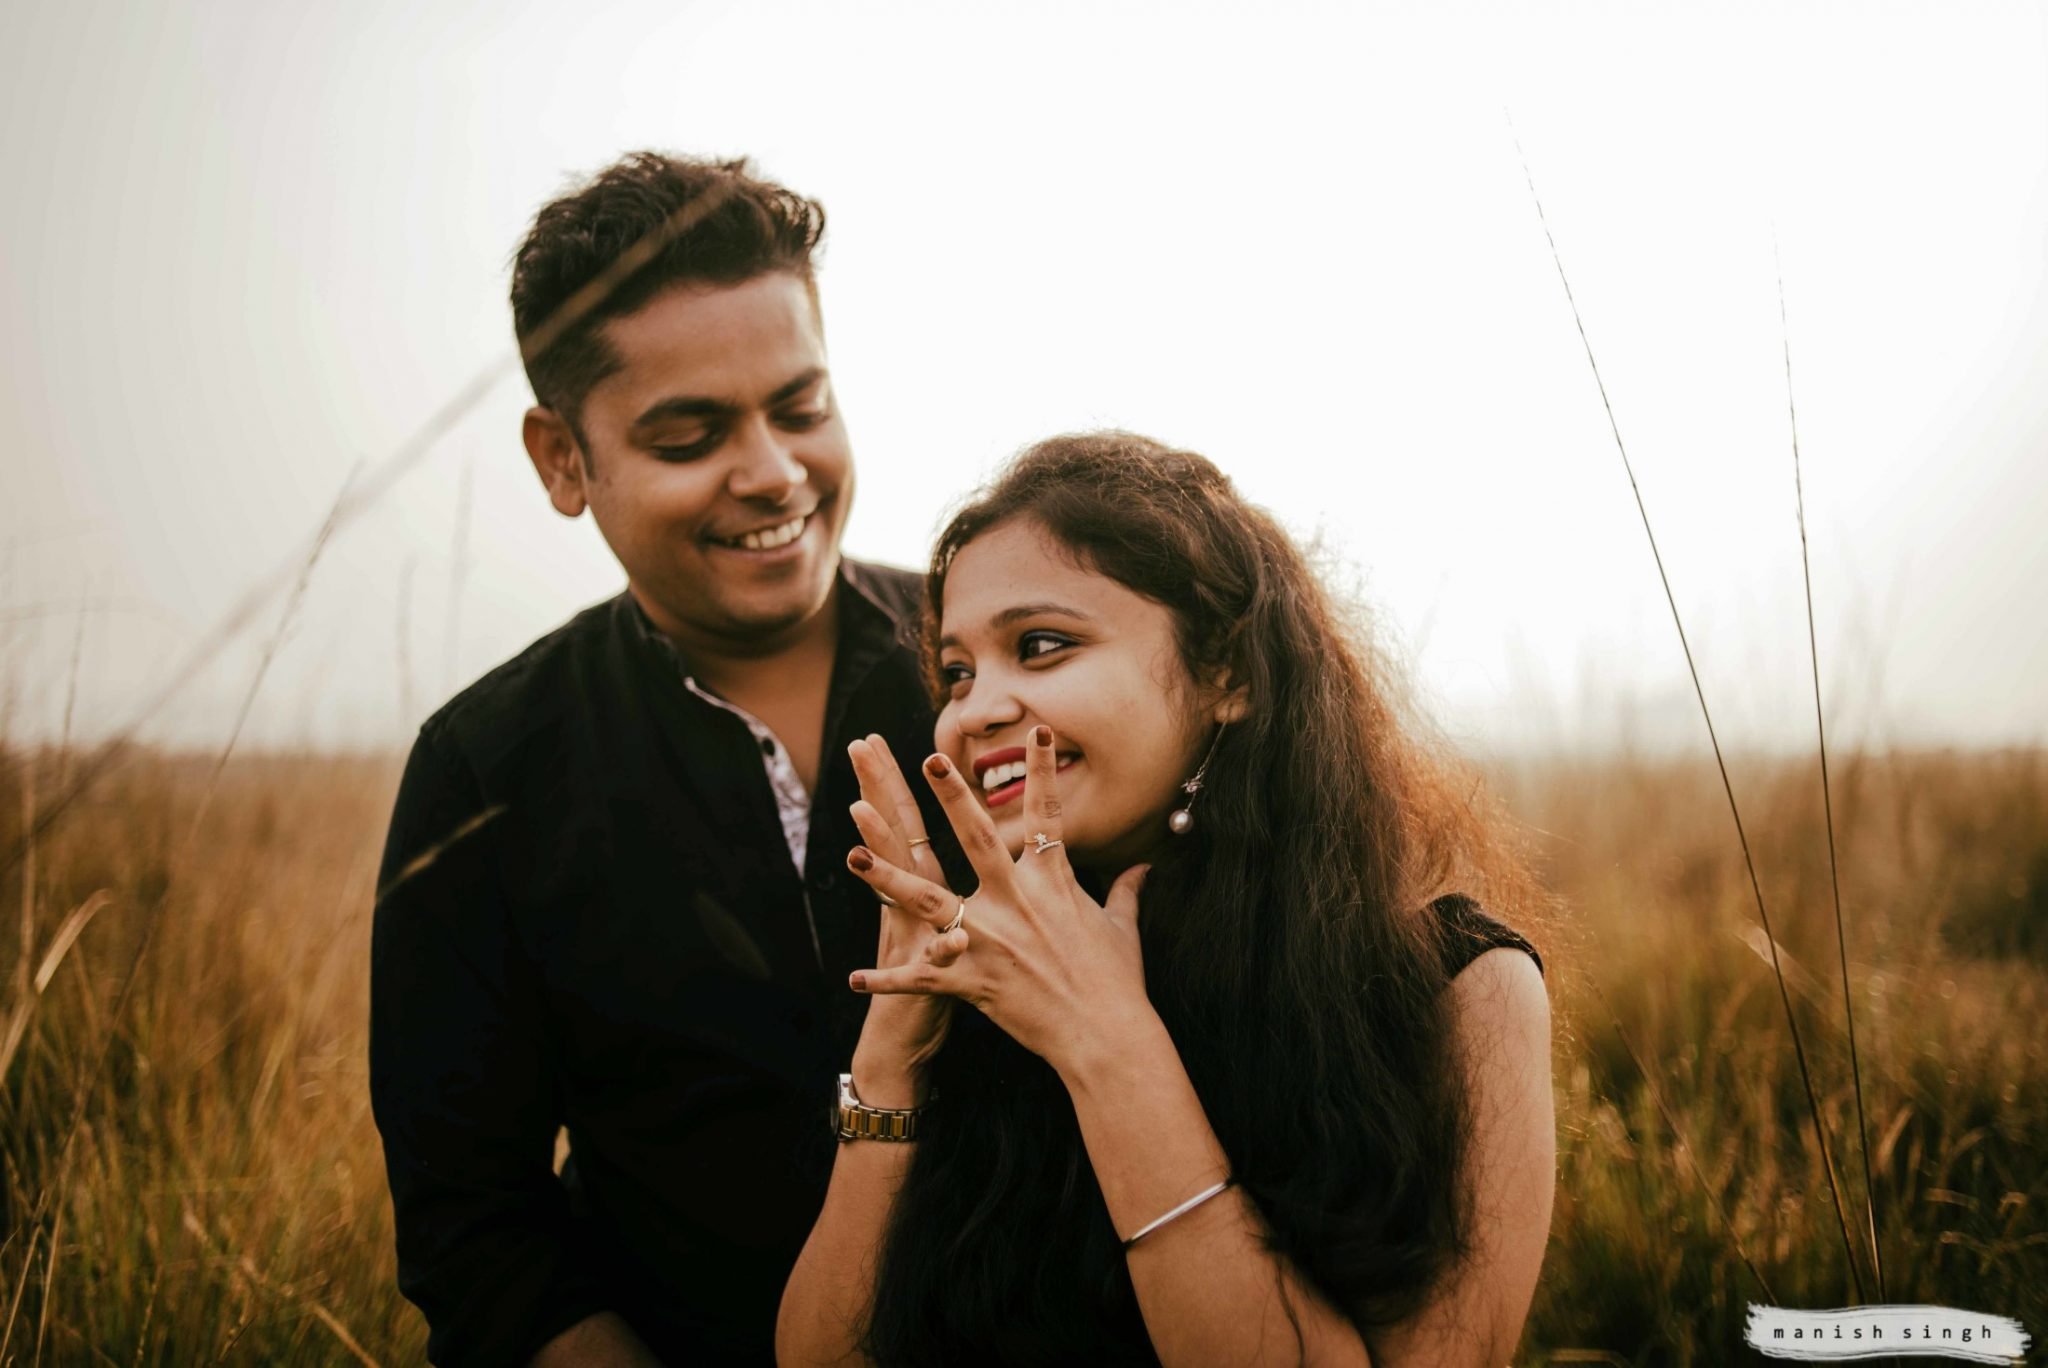 Candid Wedding Photographer Bhubaneswar Wedding Photographer Bhubaneswar Best Wedding Photographer Bhubaneswar